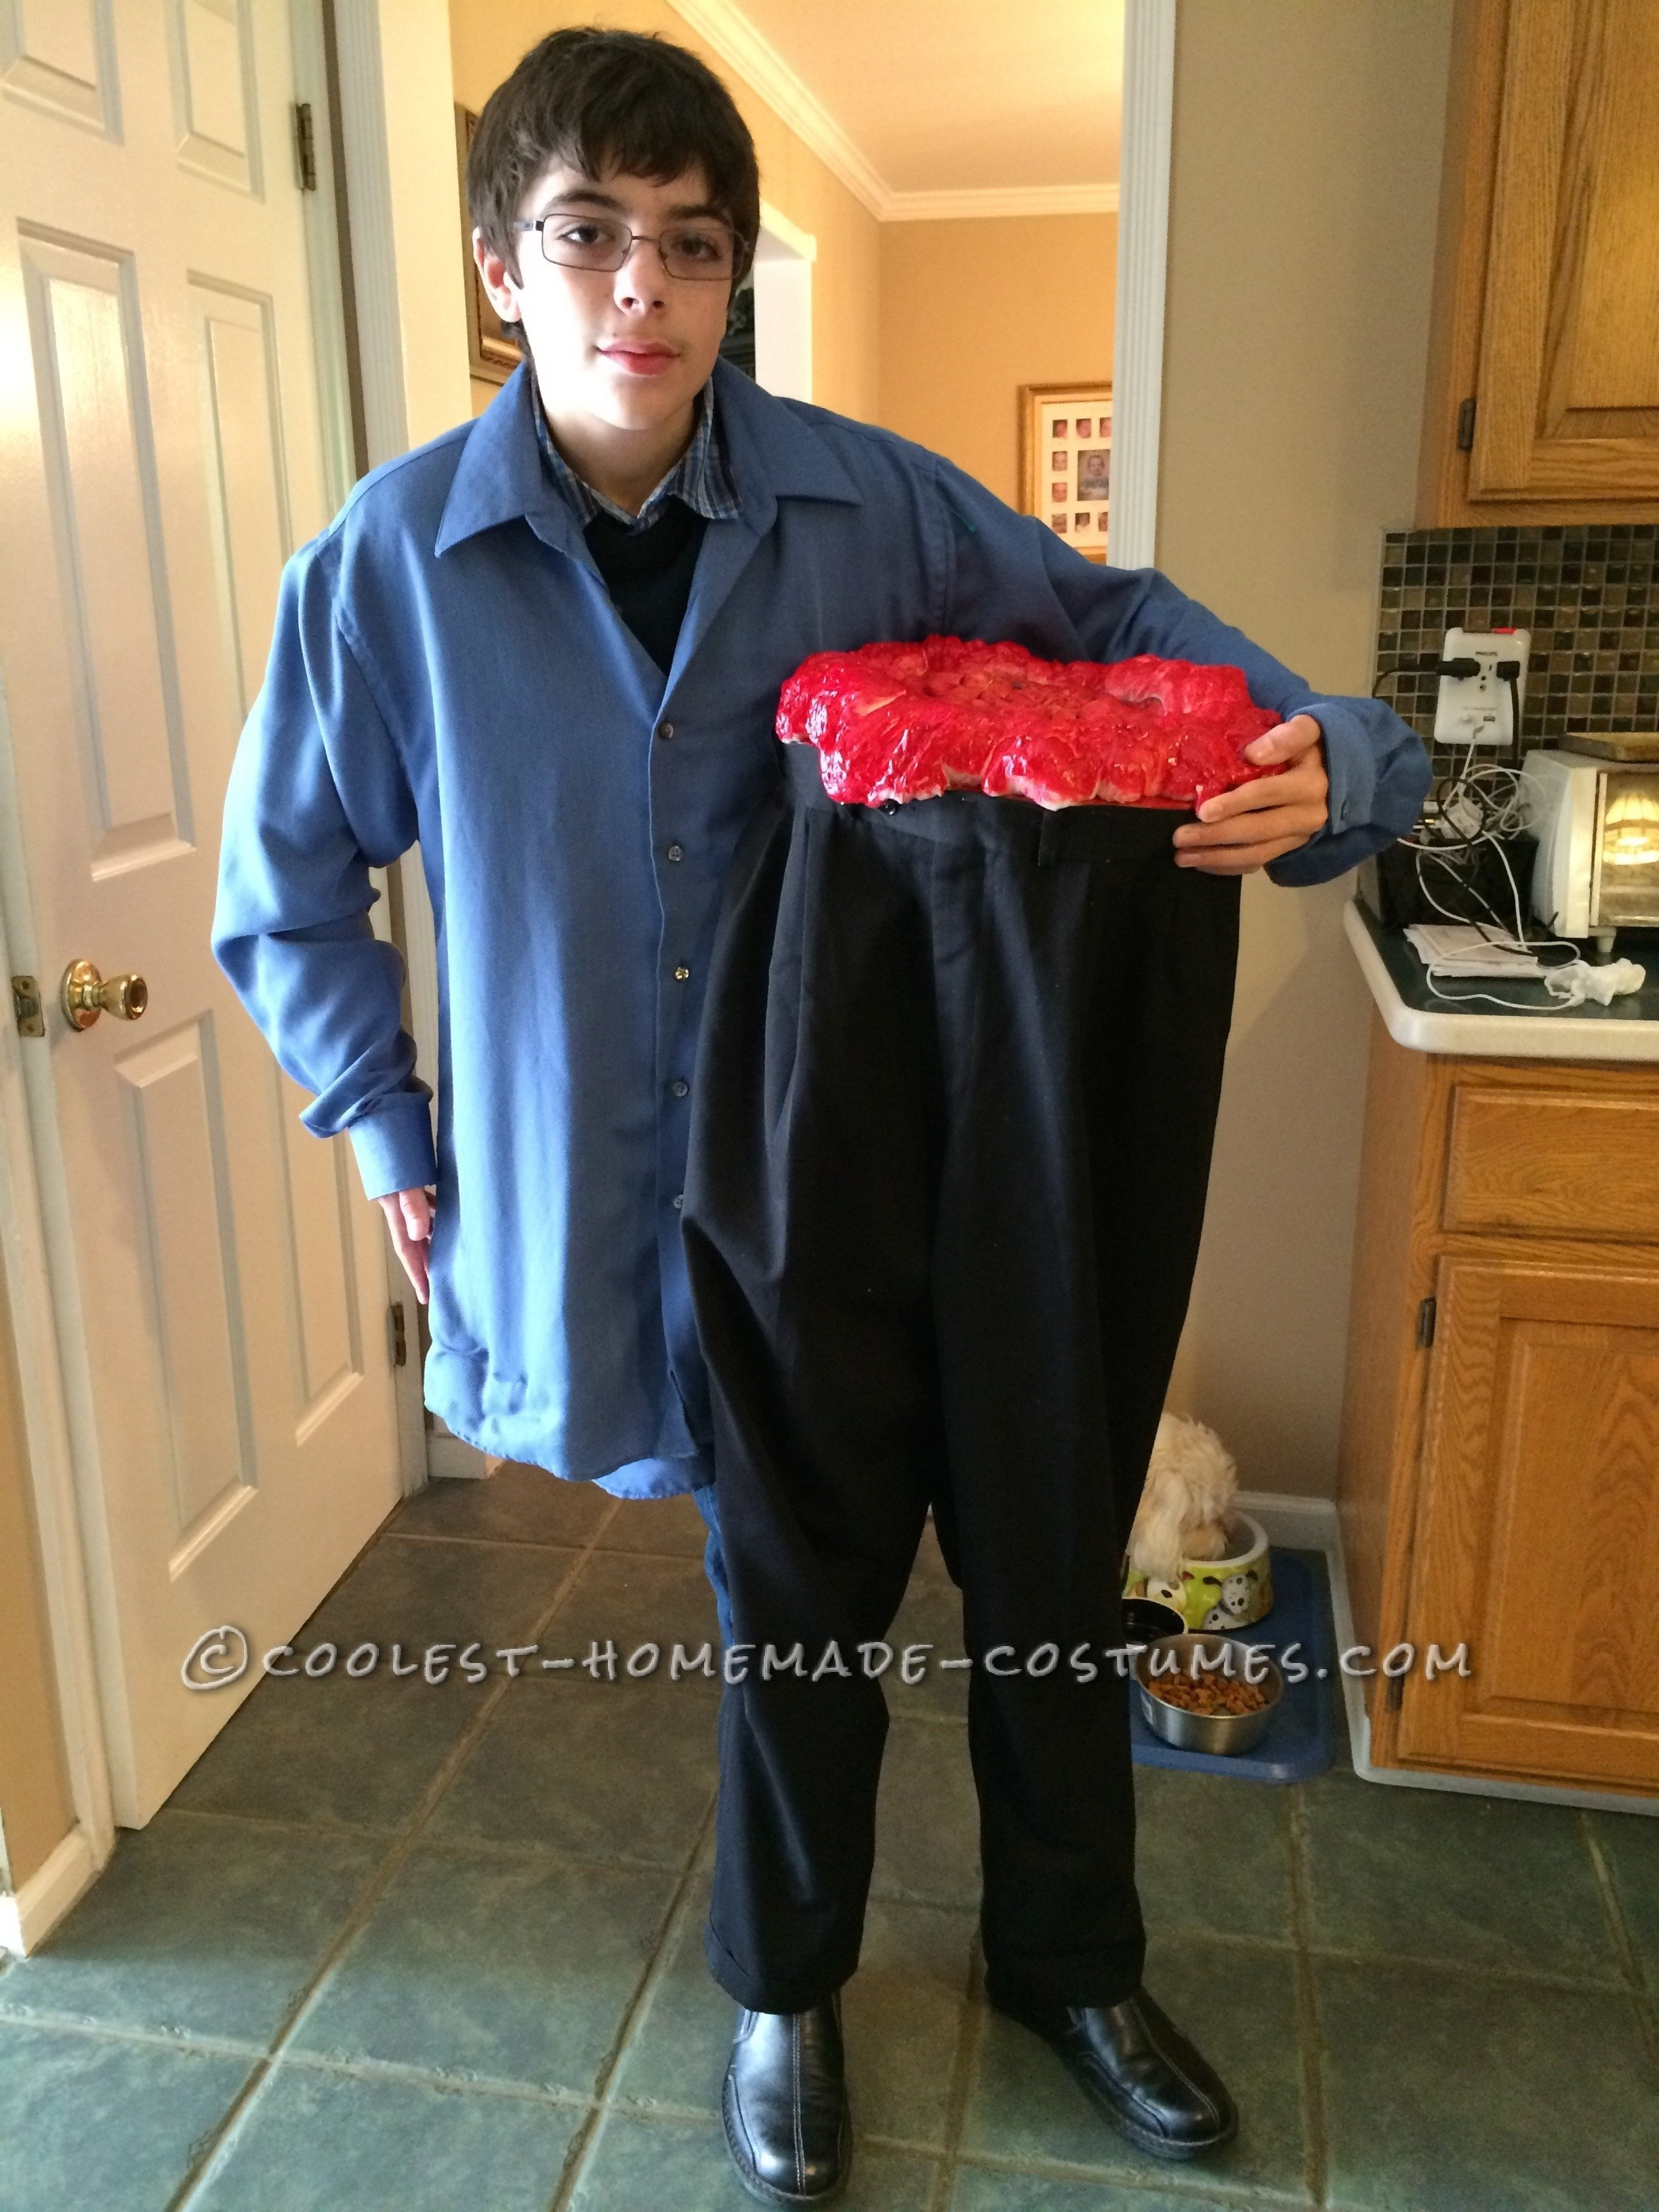 10 Trendy Cool Halloween Costume Ideas For Men cool illusion costume half the man i used to be halloween 6 2020